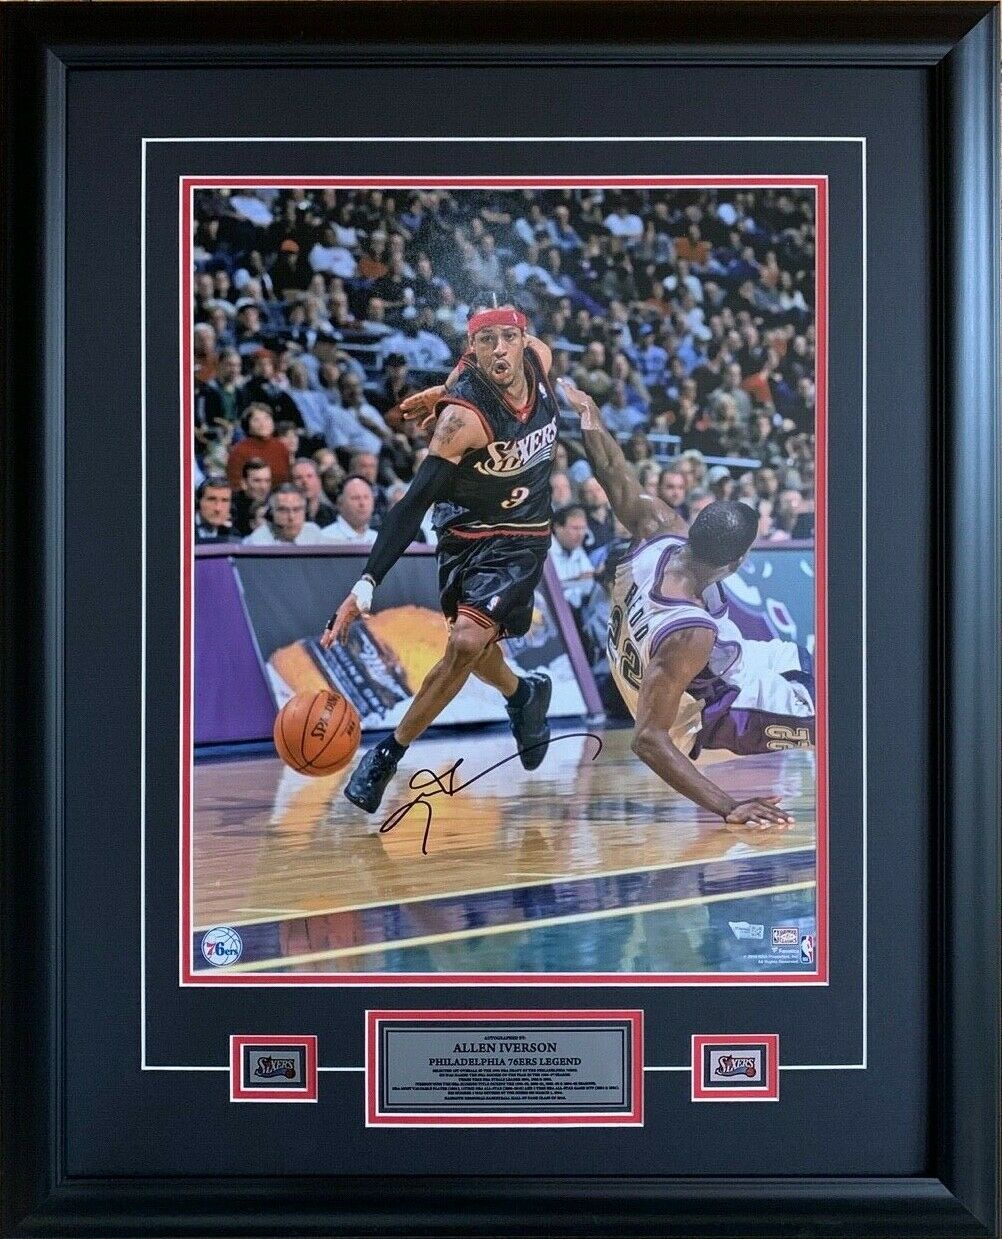 """Allen Iverson Philadelphia 76ers Autographed 16"""" x 20"""" Driving Photo Framed with Plaques"""